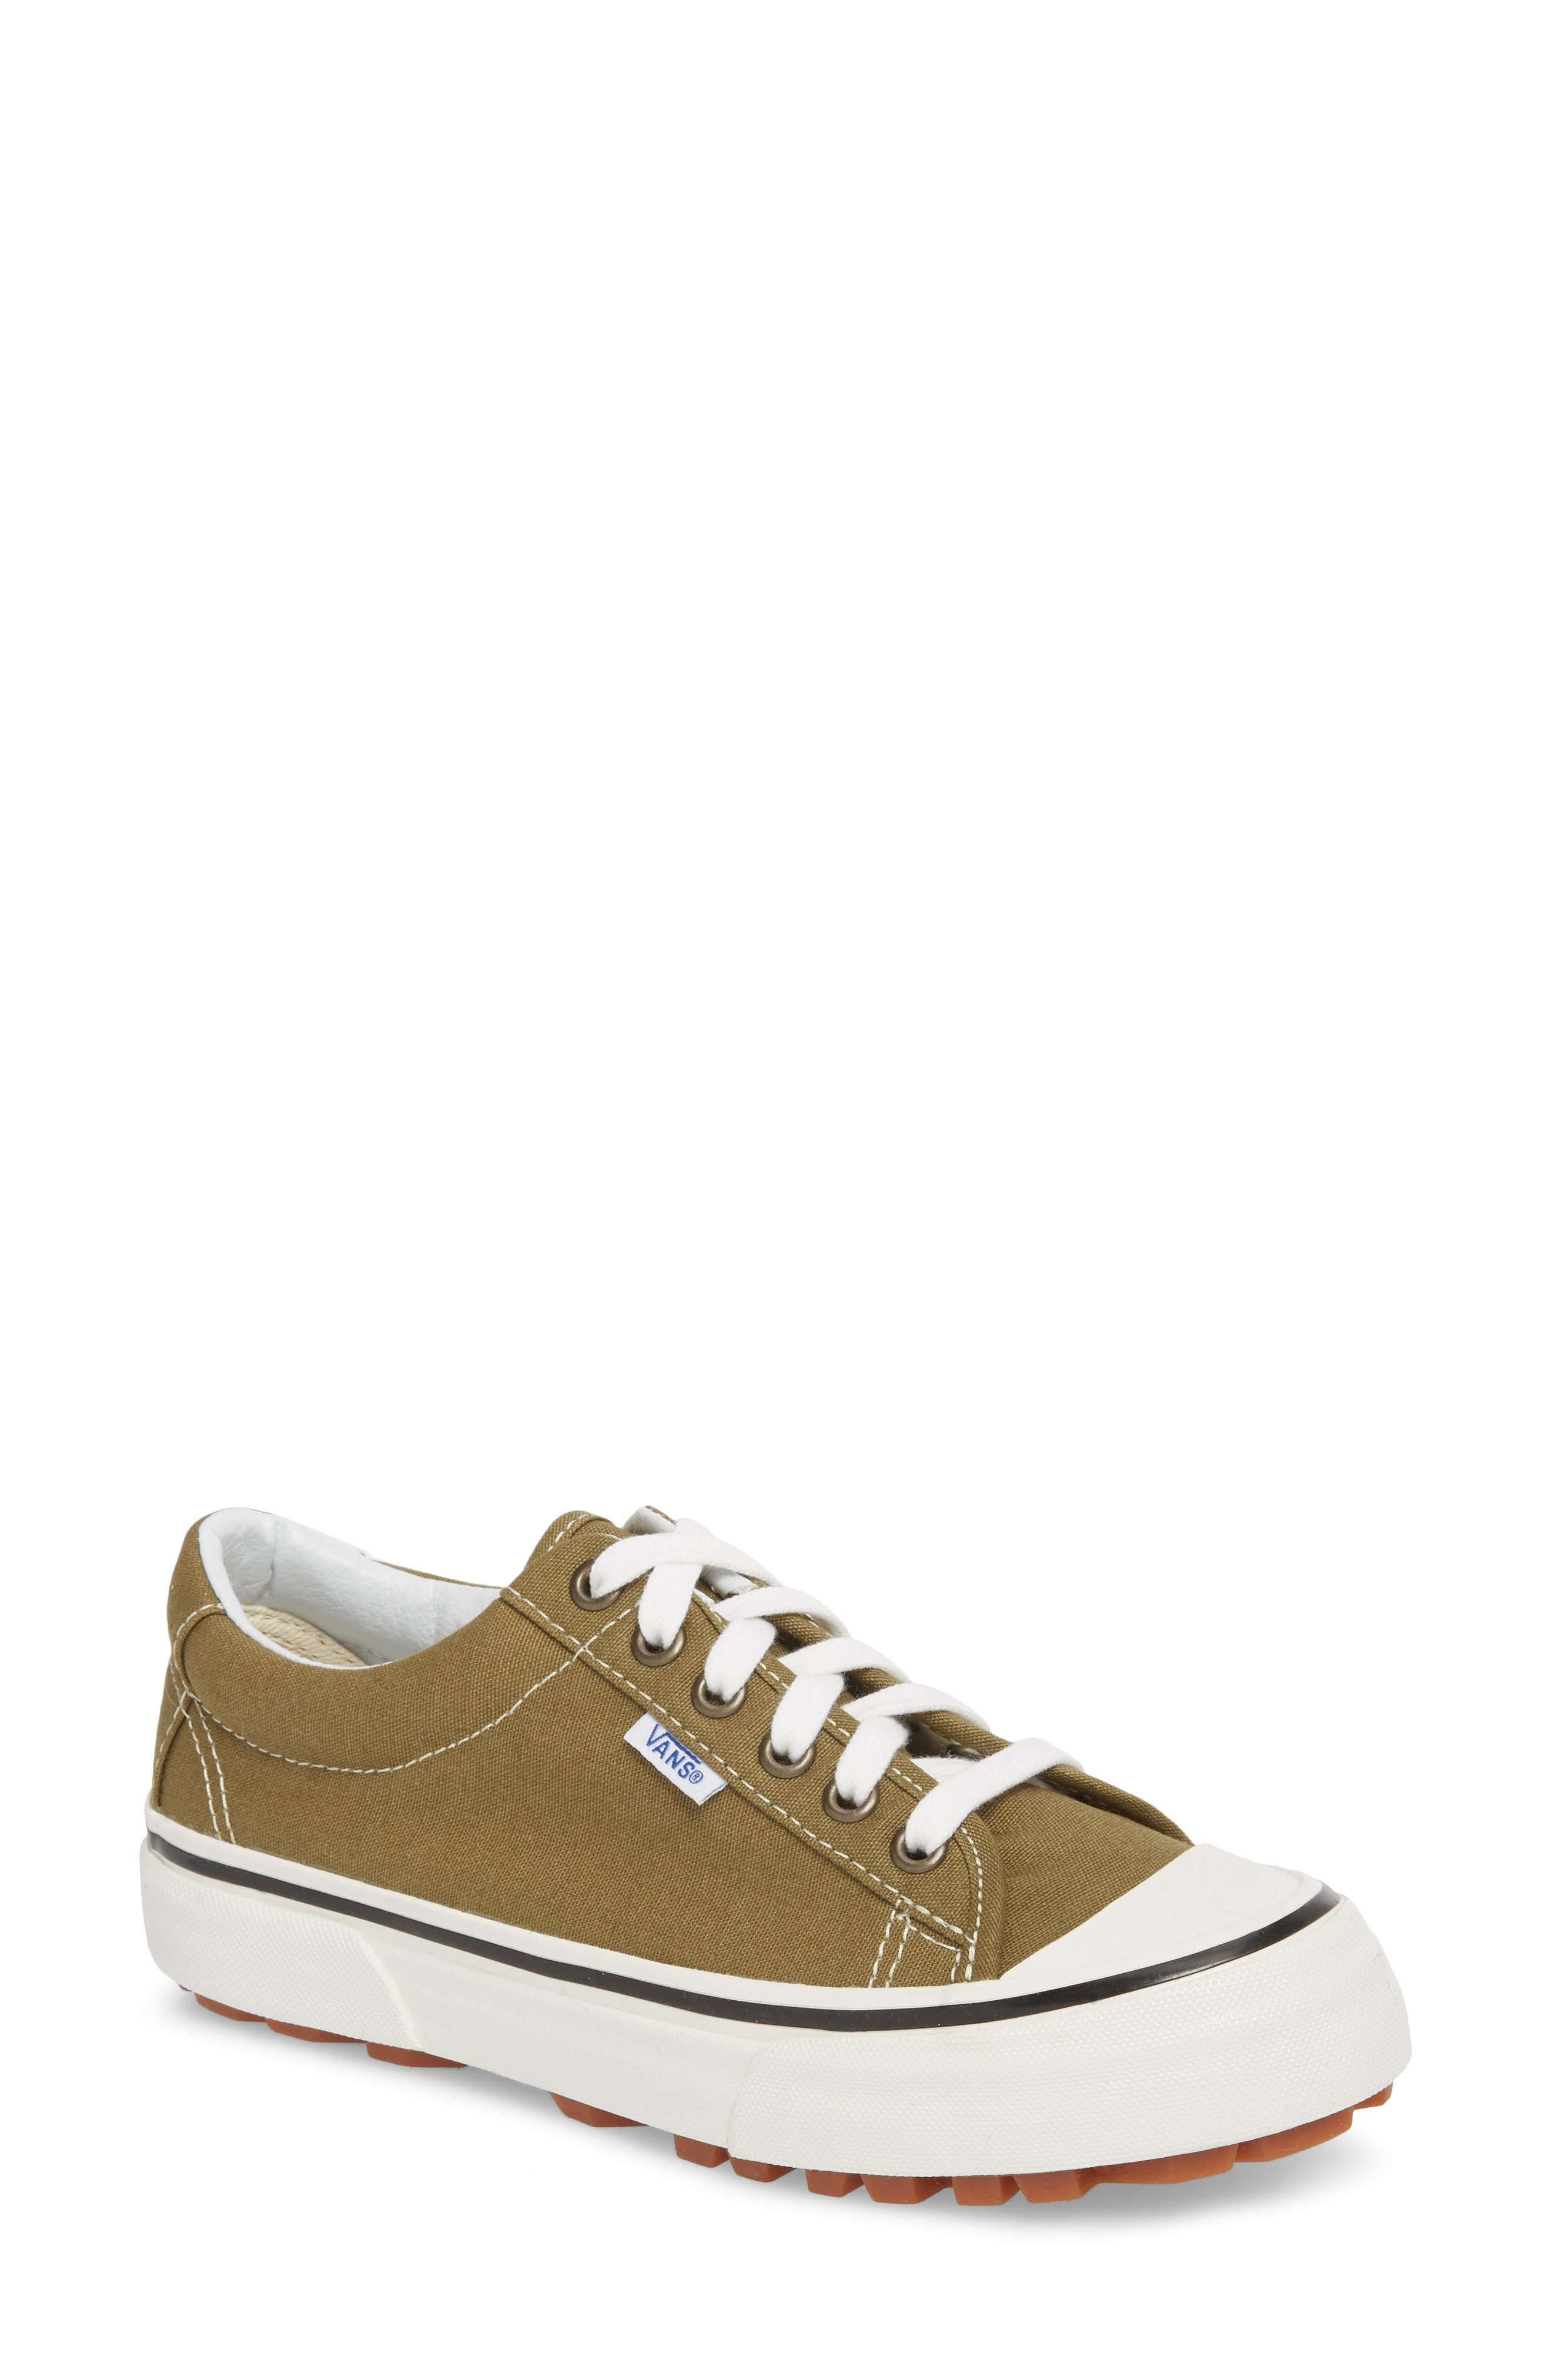 Anaheim Factory Style 29 DX Sneaker,                             Main thumbnail 1, color,                             Anaheim Factory Olive